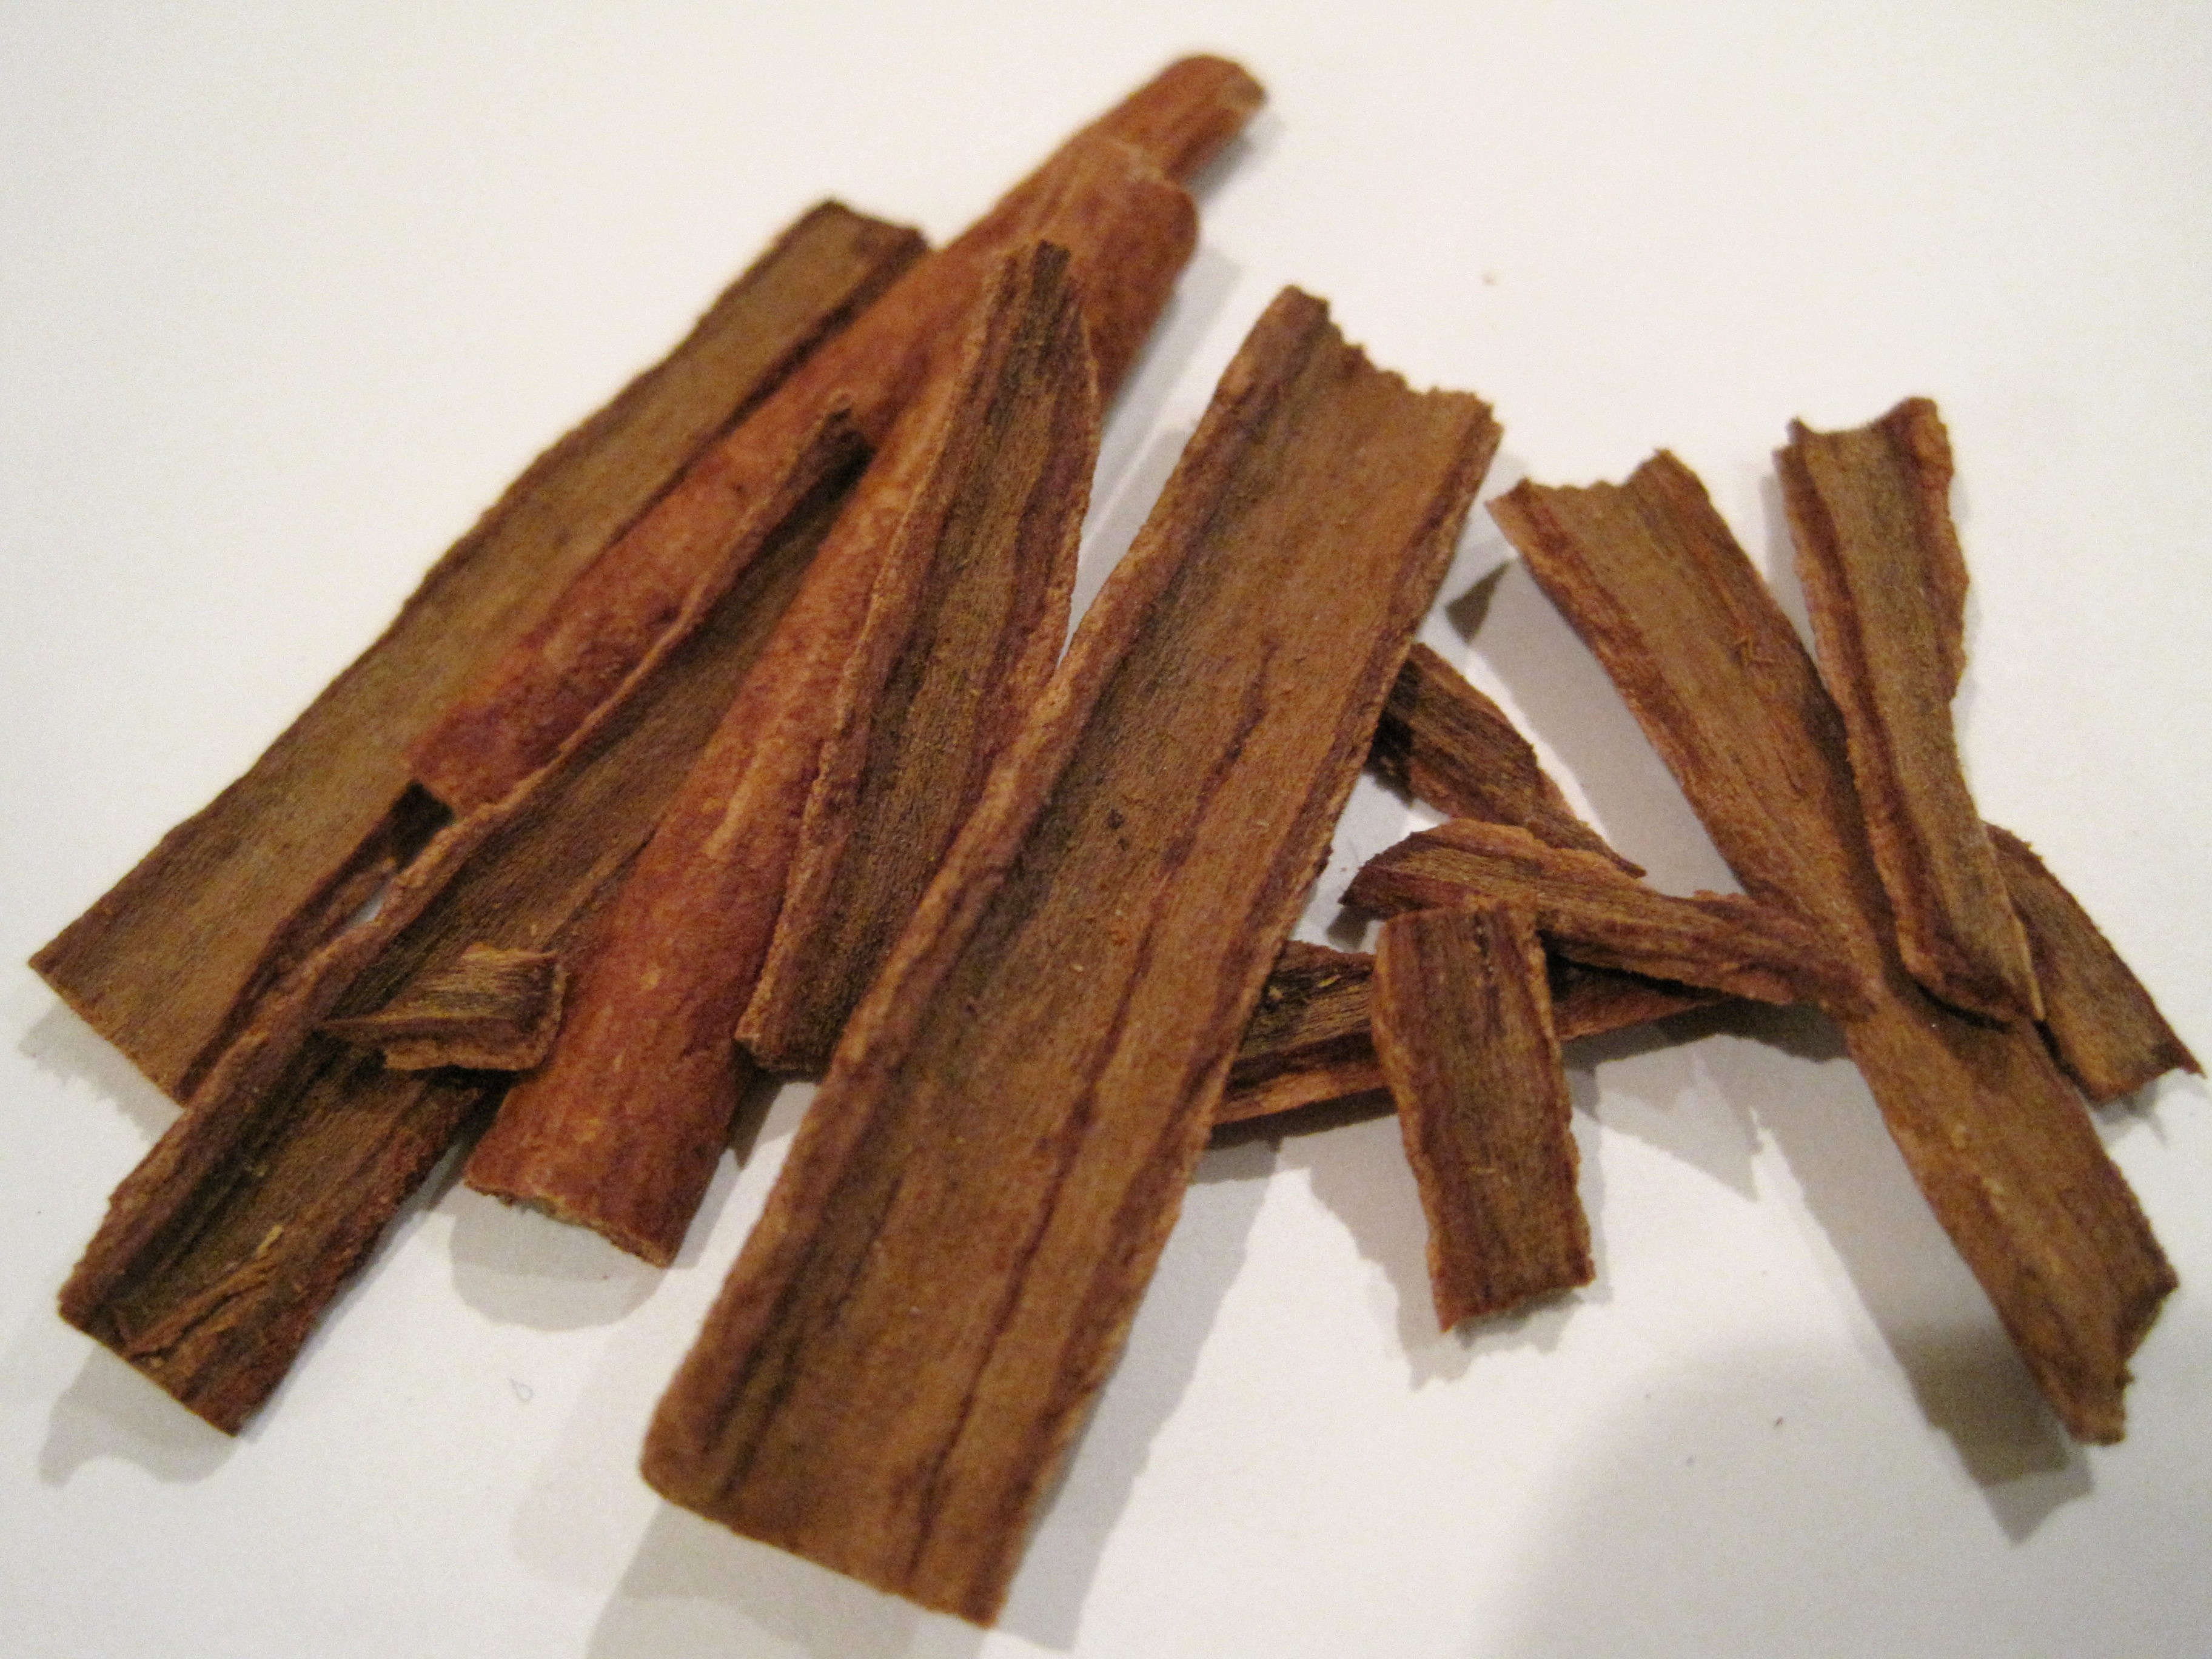 Self-explanatory. whole cinnamon sticks are often used to flavor meat